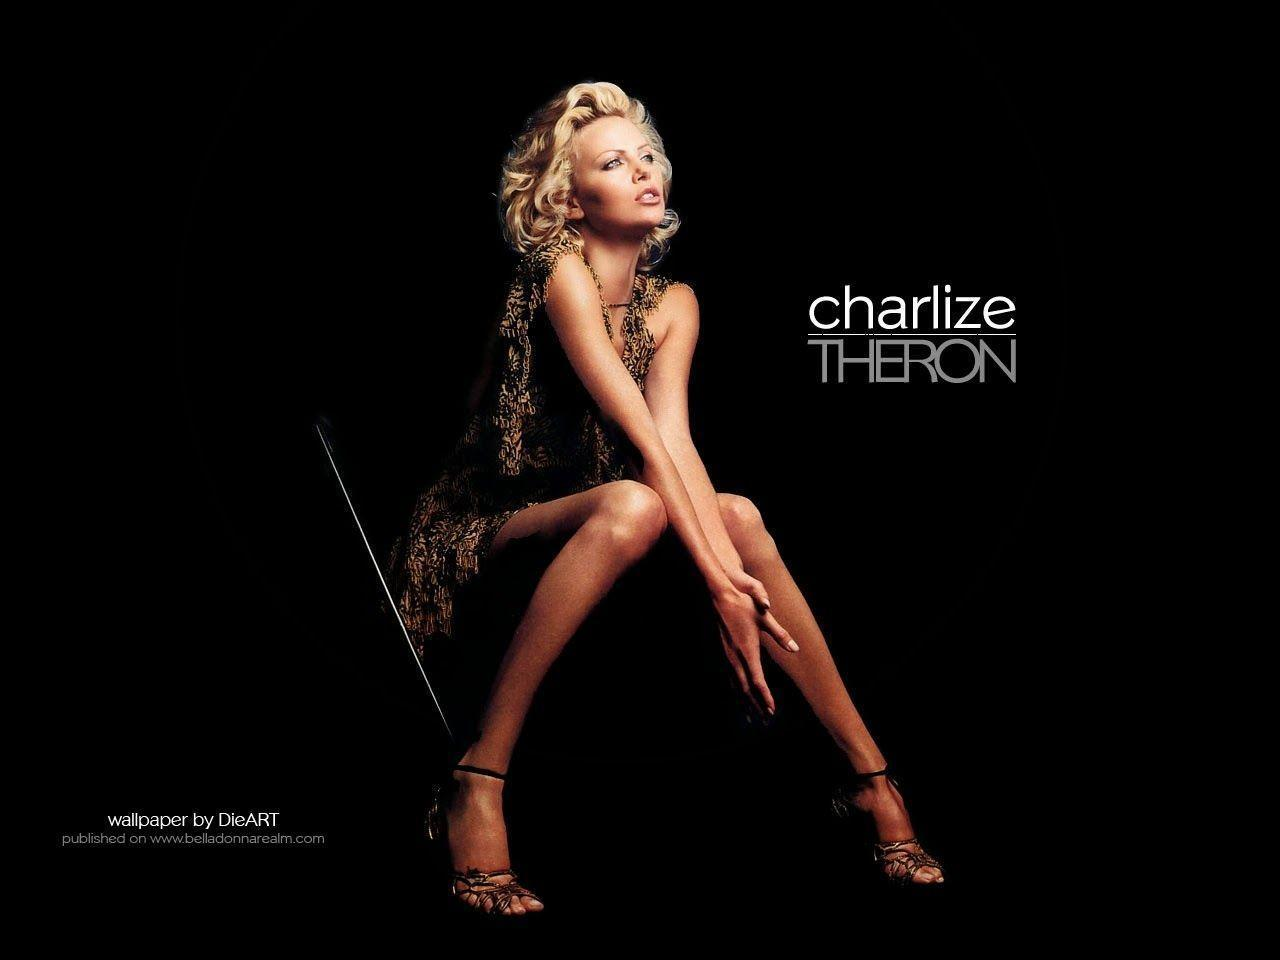 charlize theron wallpaper/charlize theron hot wallpaper/charlize ...